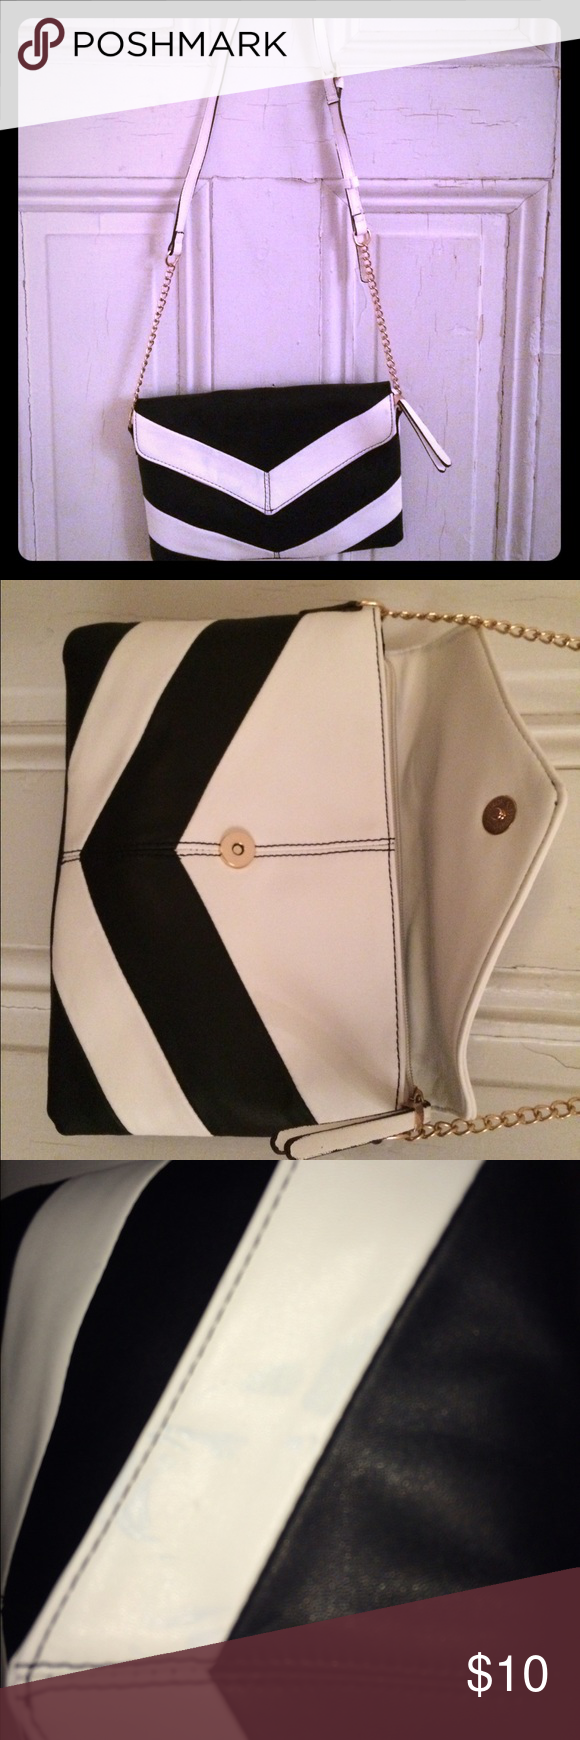 Black and white faux leather purse Gold chain and white faux leather band. Zipped pocket inside. Slight blue stain on flap. Bags Shoulder Bags